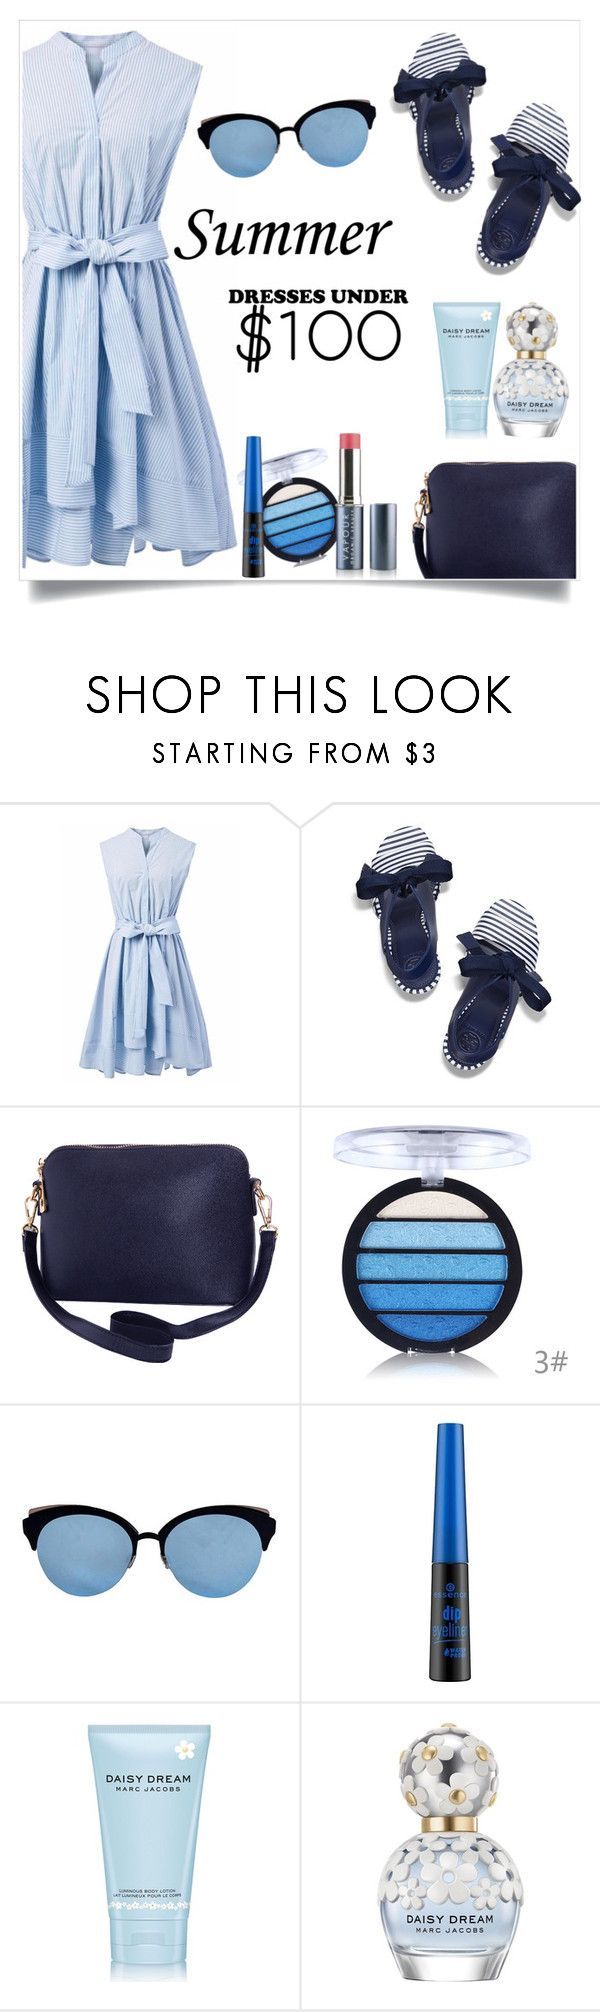 """""""Summer dress under $100"""" by gmg5 ❤ liked on Polyvore featuring Chicwish, Tory Burch, Humble Chic, Christian Dior, Forever 21, Marc Jacobs, summerstyle, dressunder and summer2017"""